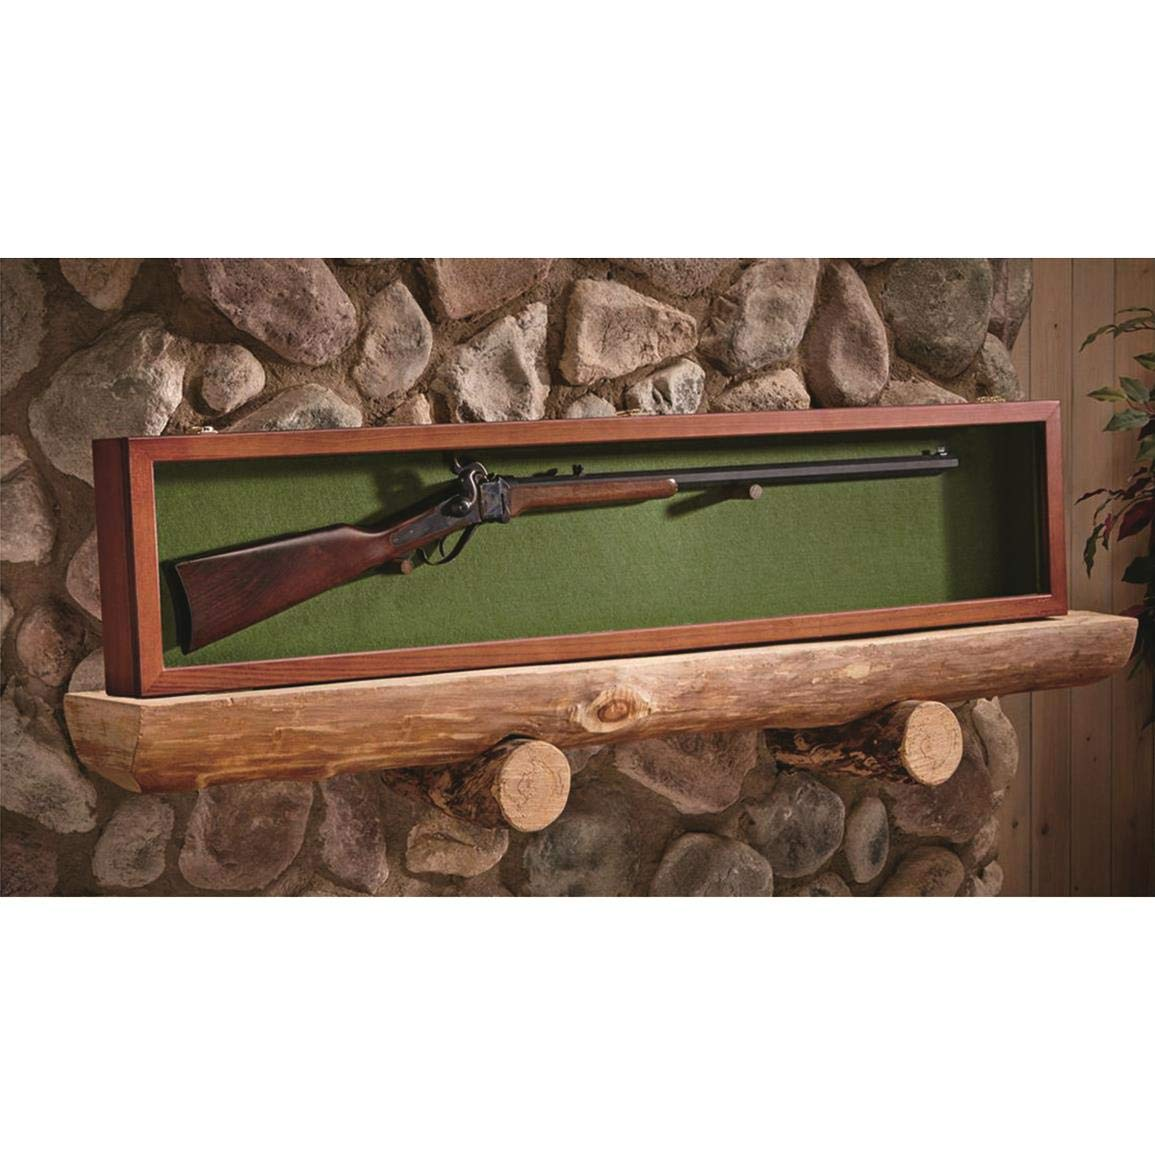 CASTLECREEK Gun Display Case, Walnut by CASTLECREEK